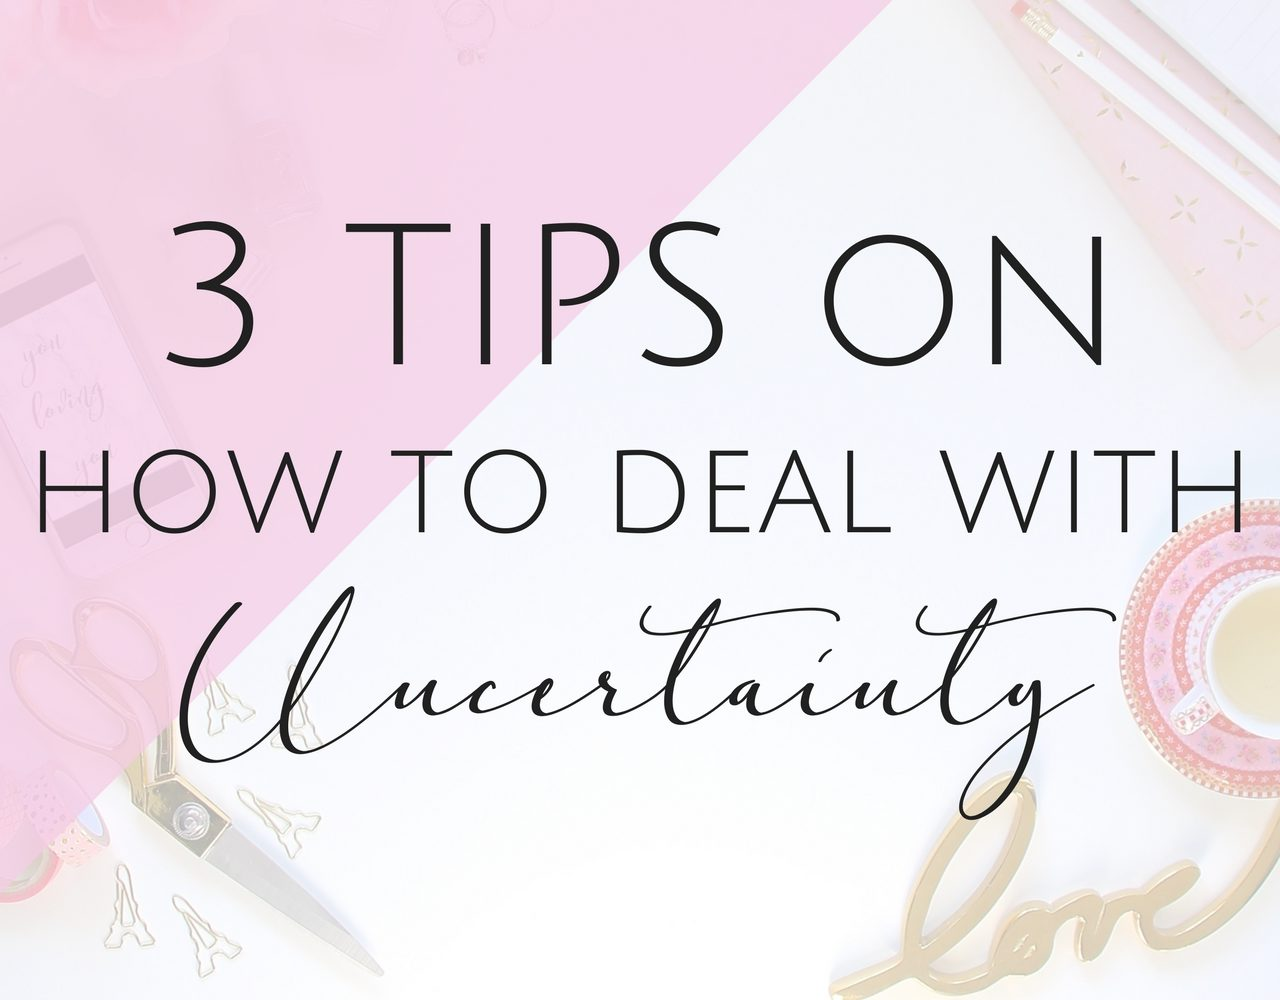 3 tips on How to Deal with Uncertainty